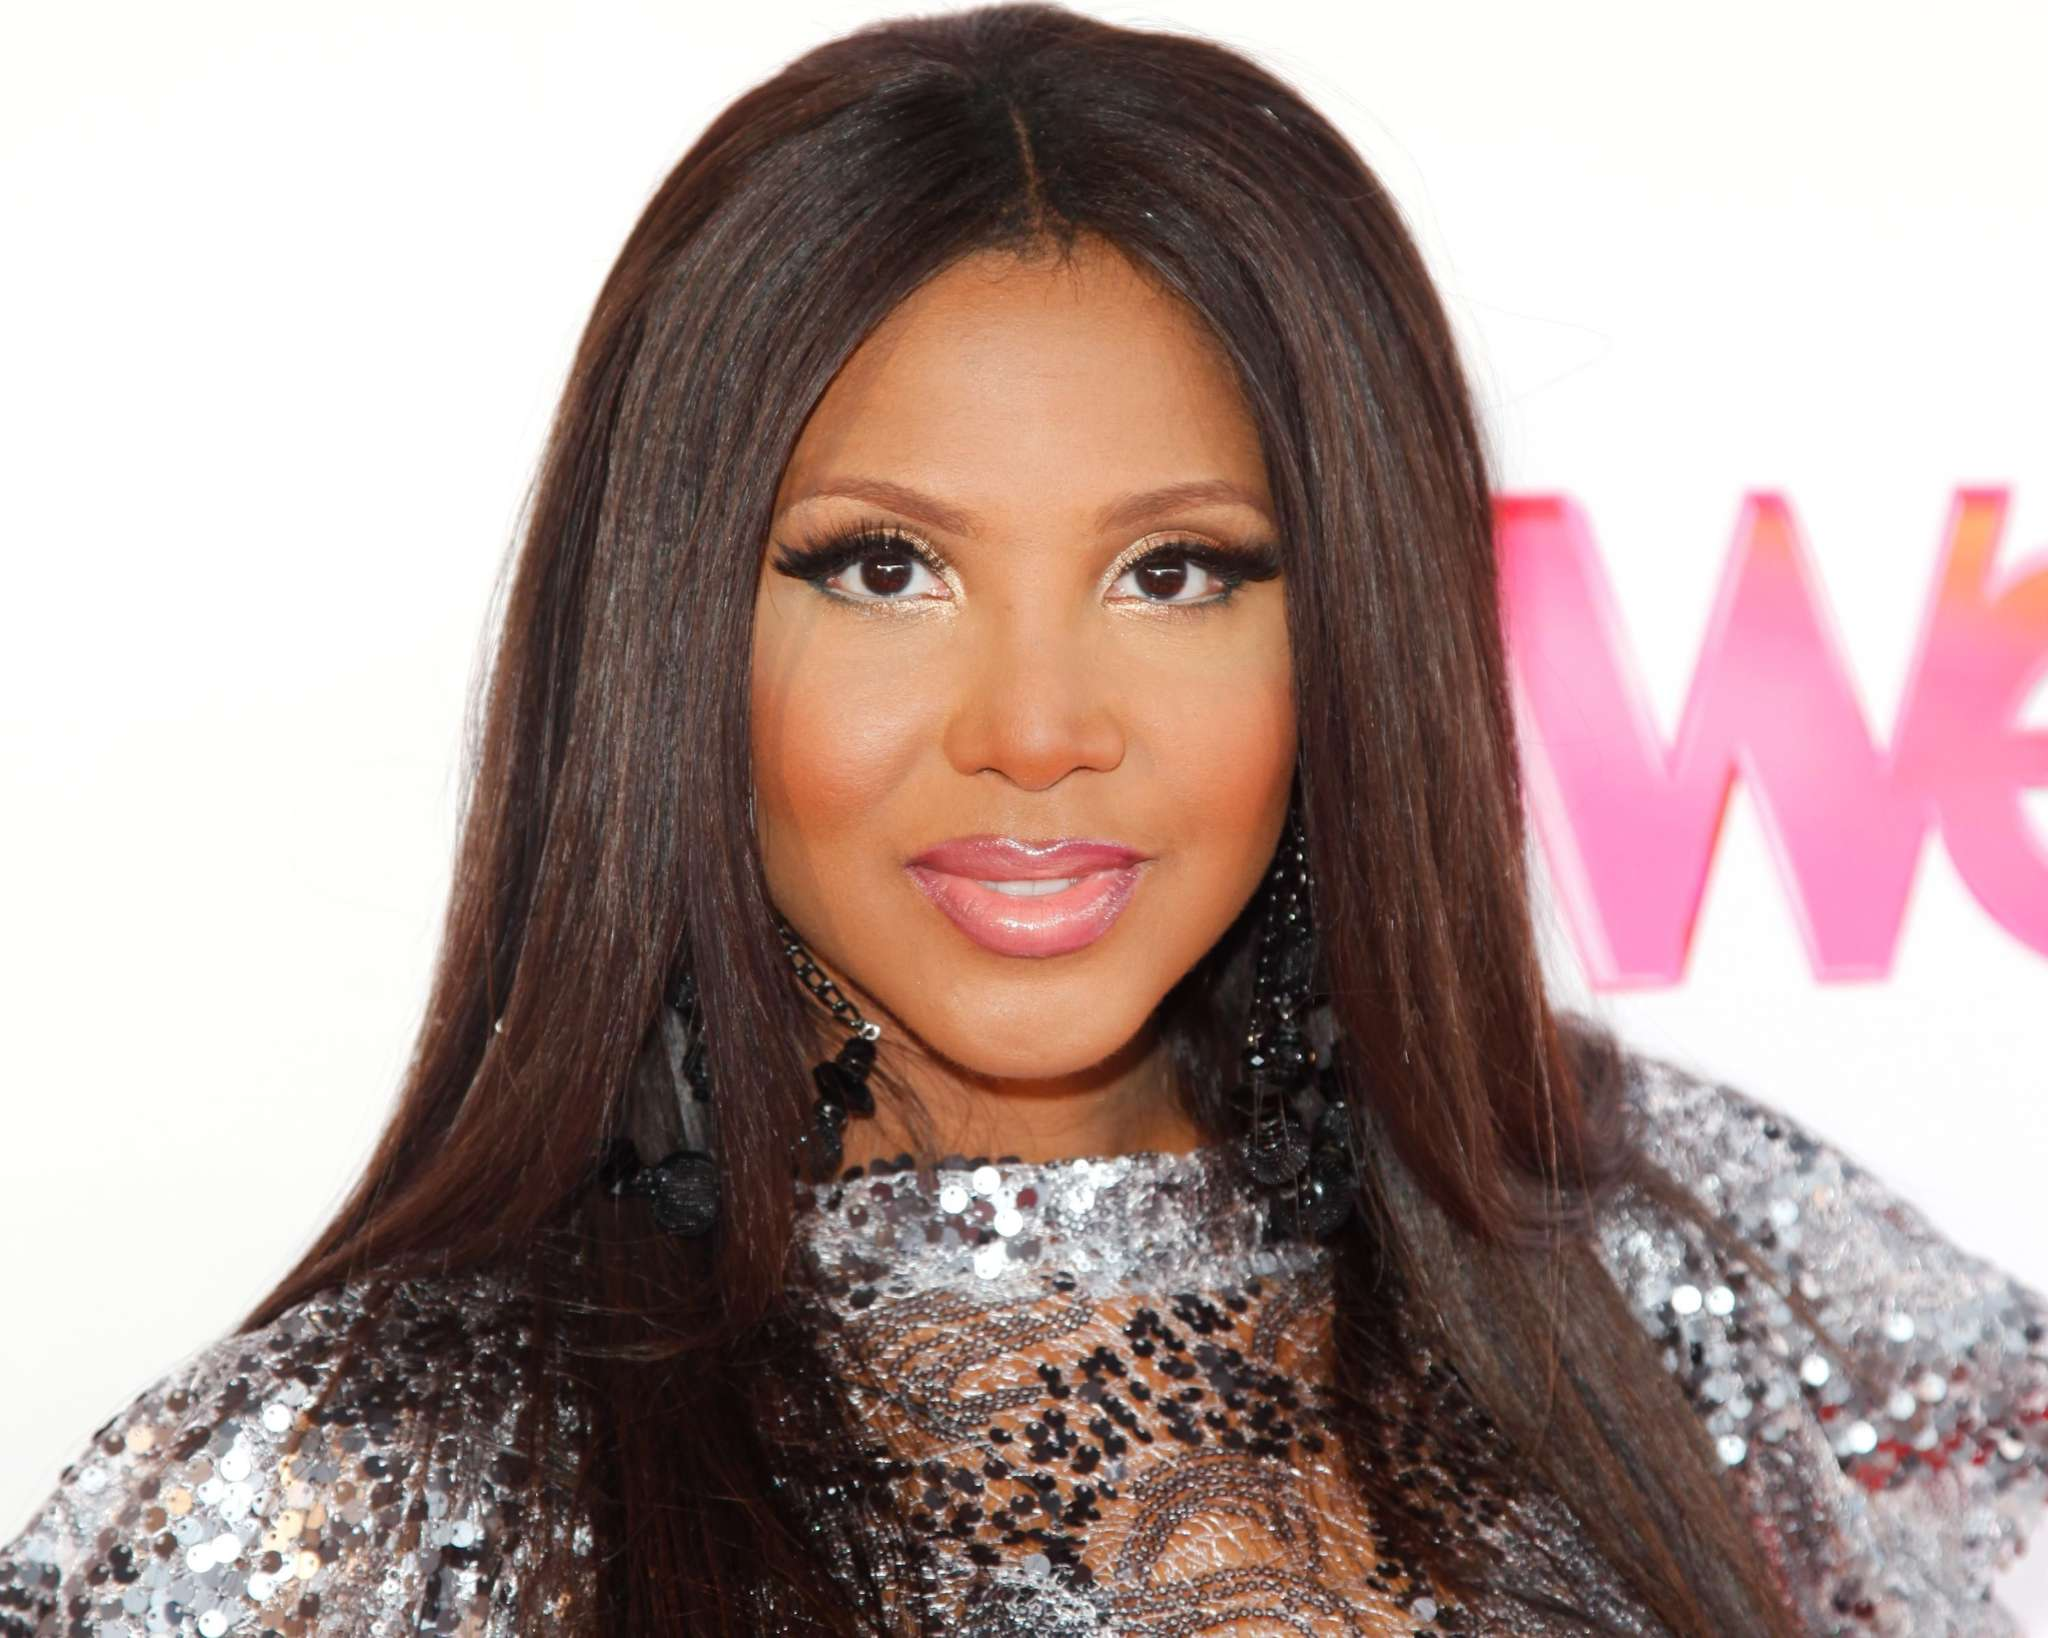 Toni Braxton Poses With Her Sister, Tamar Braxton And Their Brother Michael - See The Photo Here